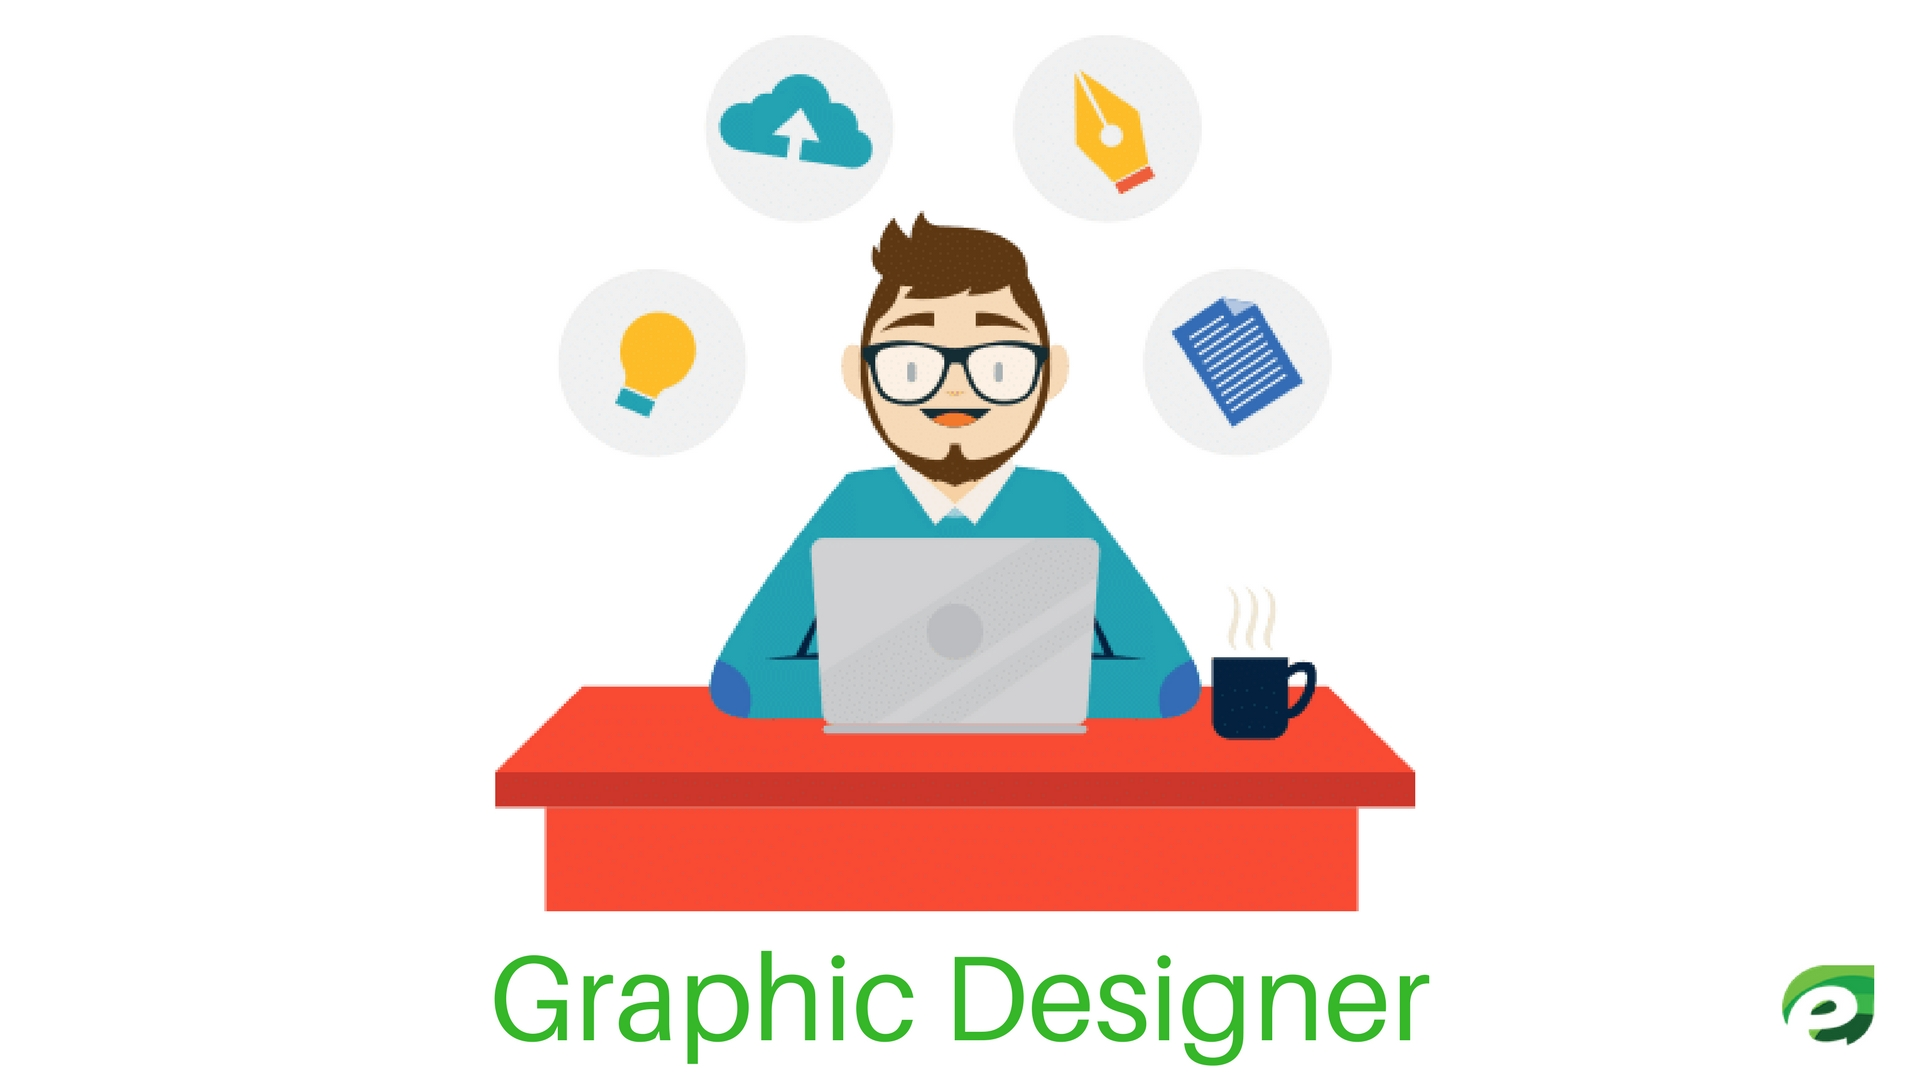 Graphic Designer - SEO Team